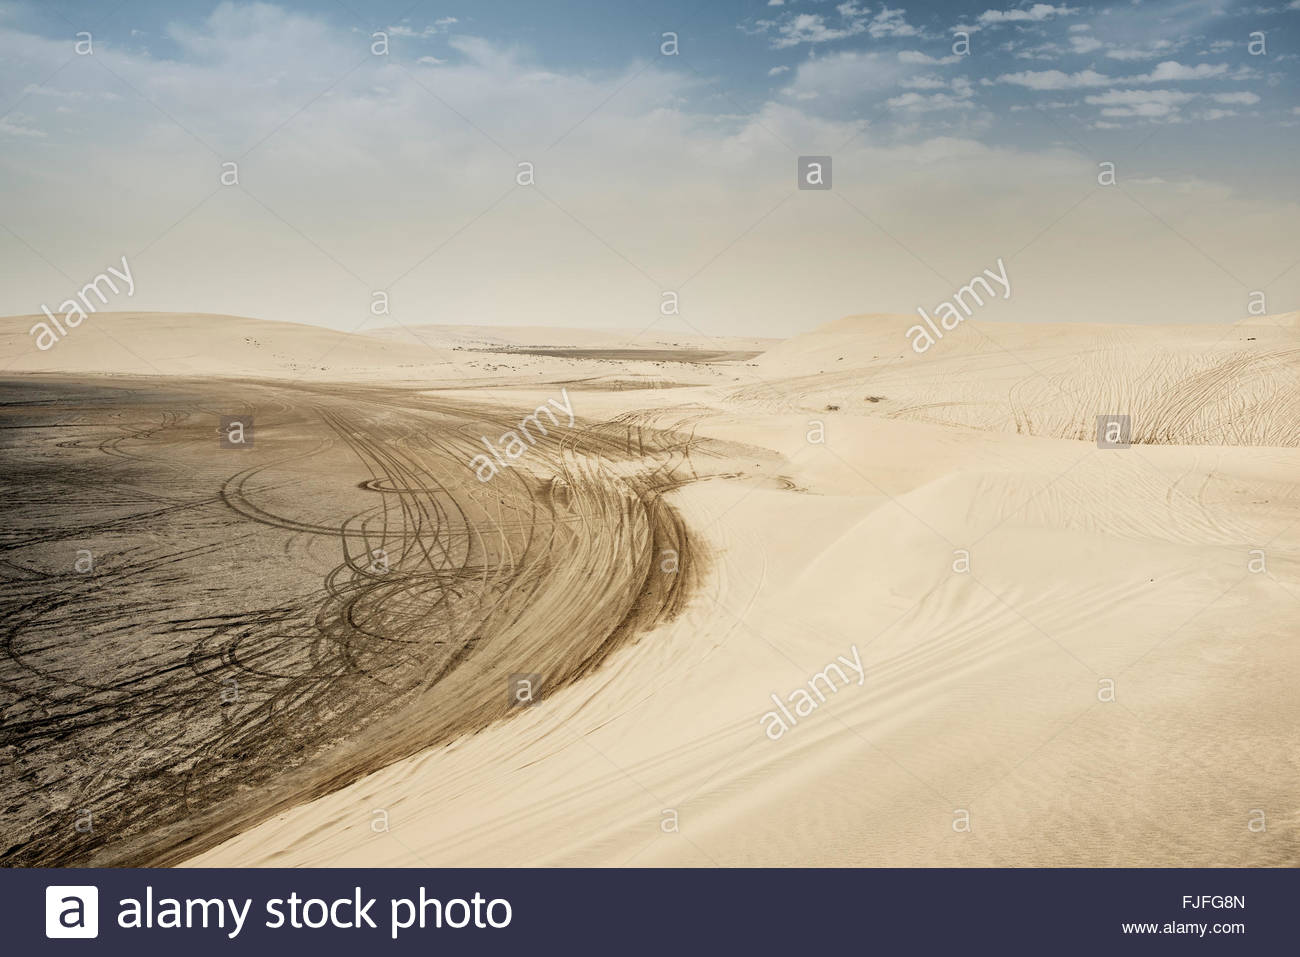 Quad bike tyre tracks in the dunes of the Inland Sea (Khor al Adaid) in southern Qatar - Stock Image